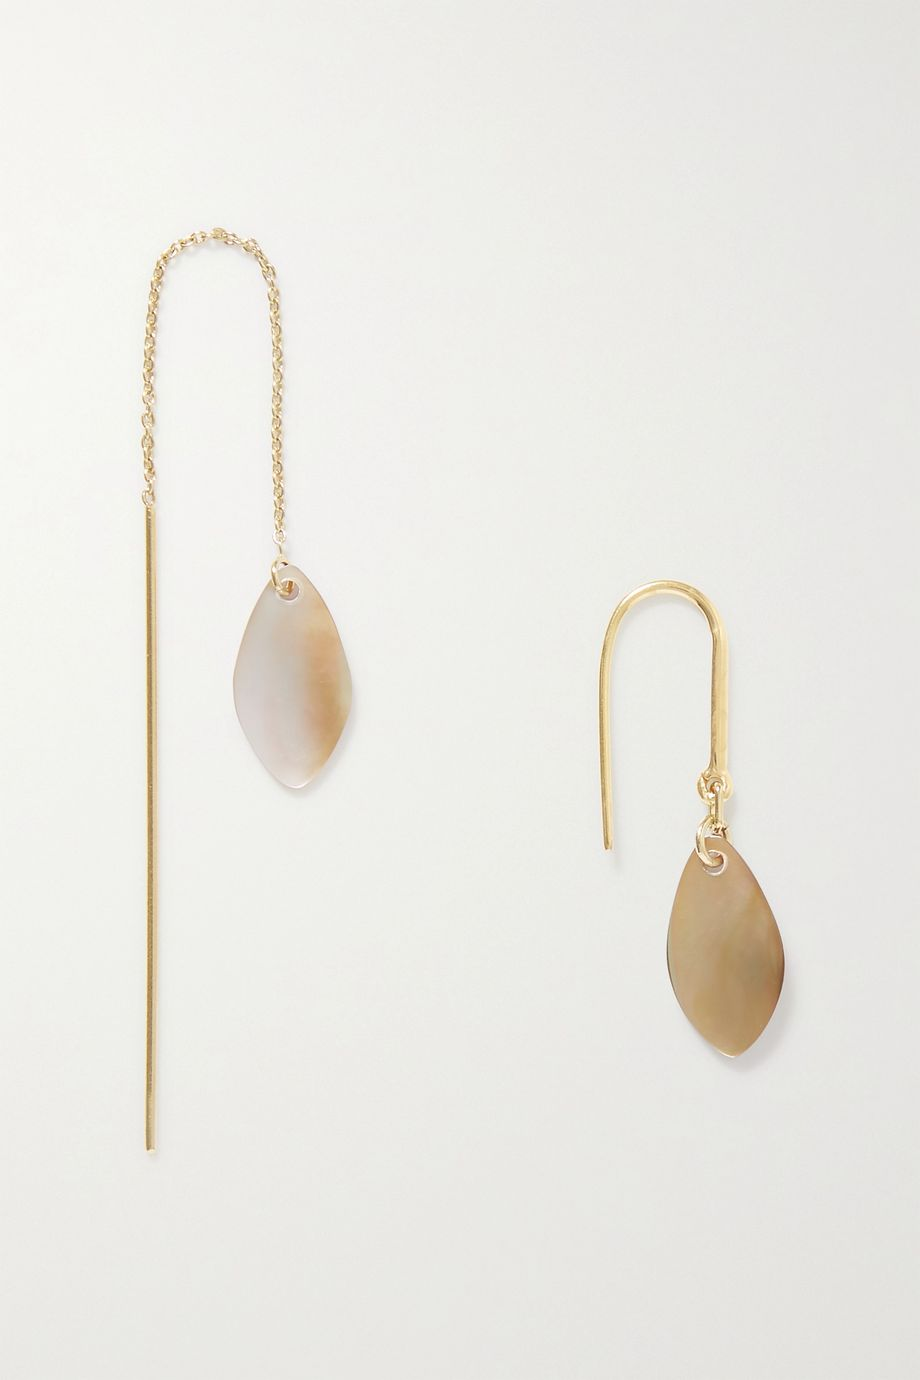 Isabel Marant Ali gold-tone and shell earrings